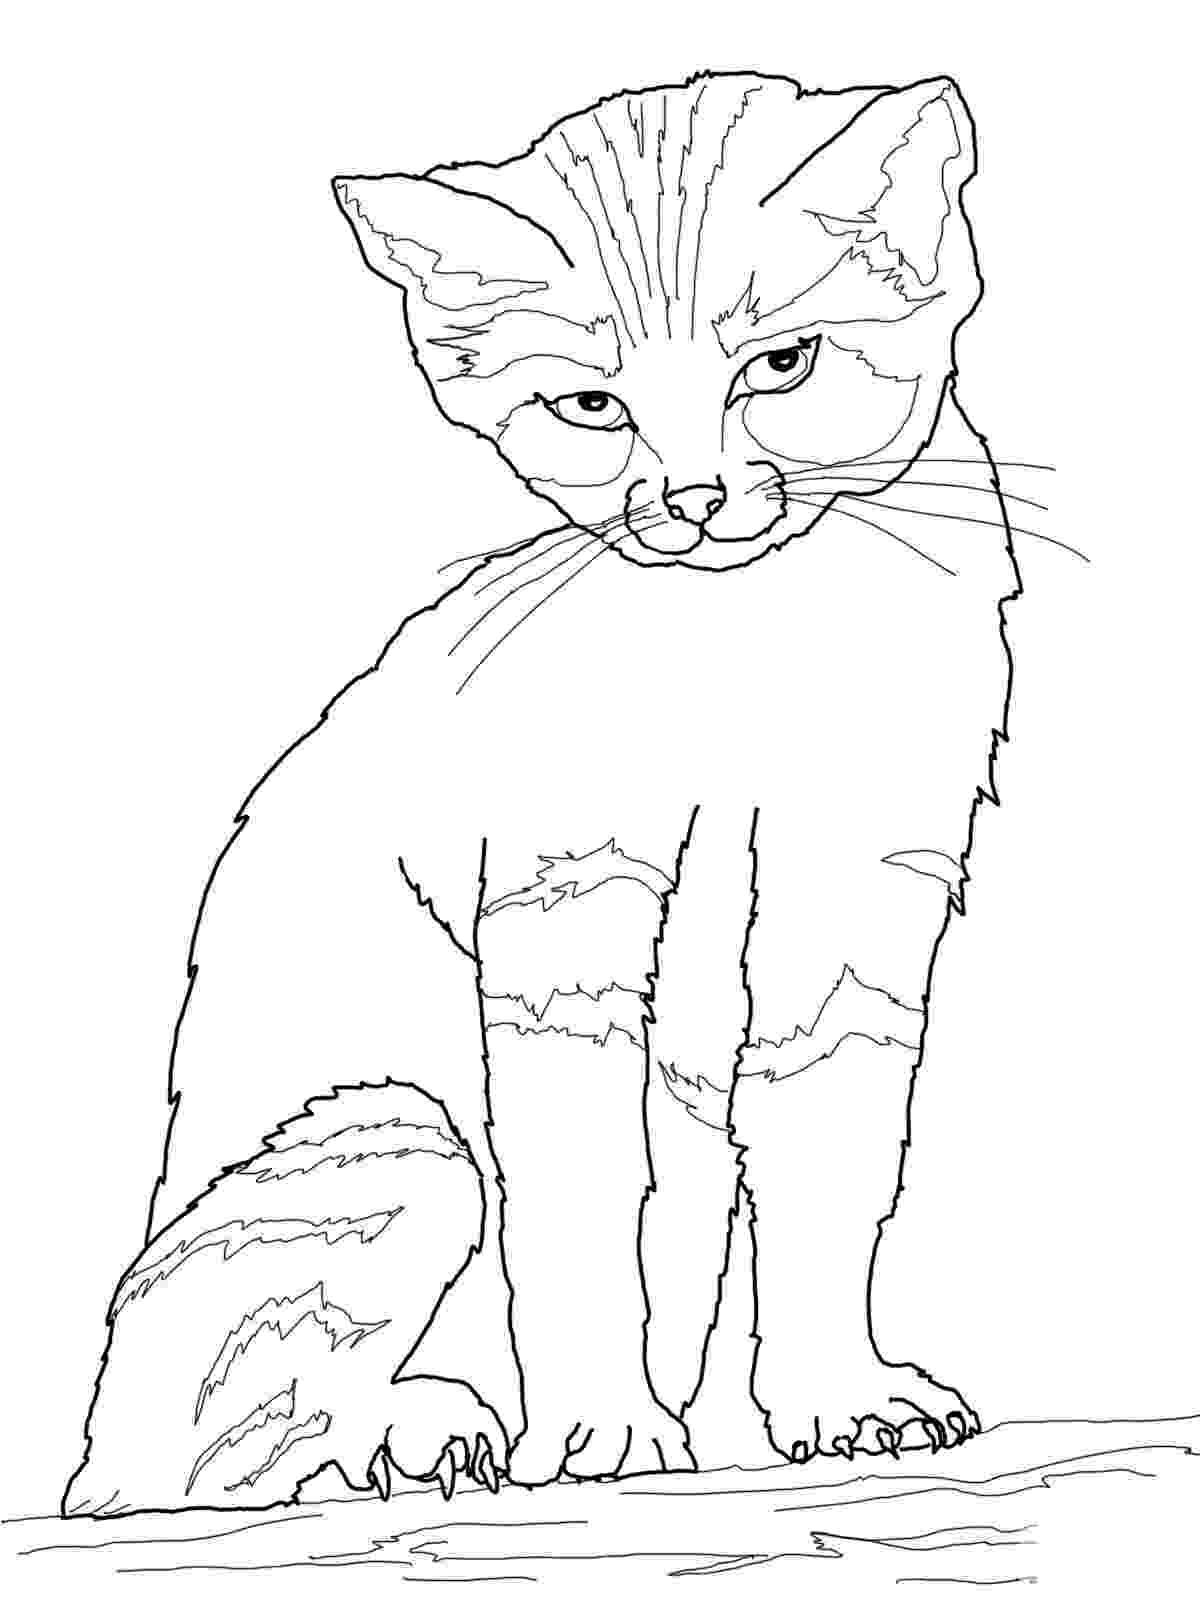 free printable cat pictures to color free printable cat coloring pages for kids pictures free to cat color printable